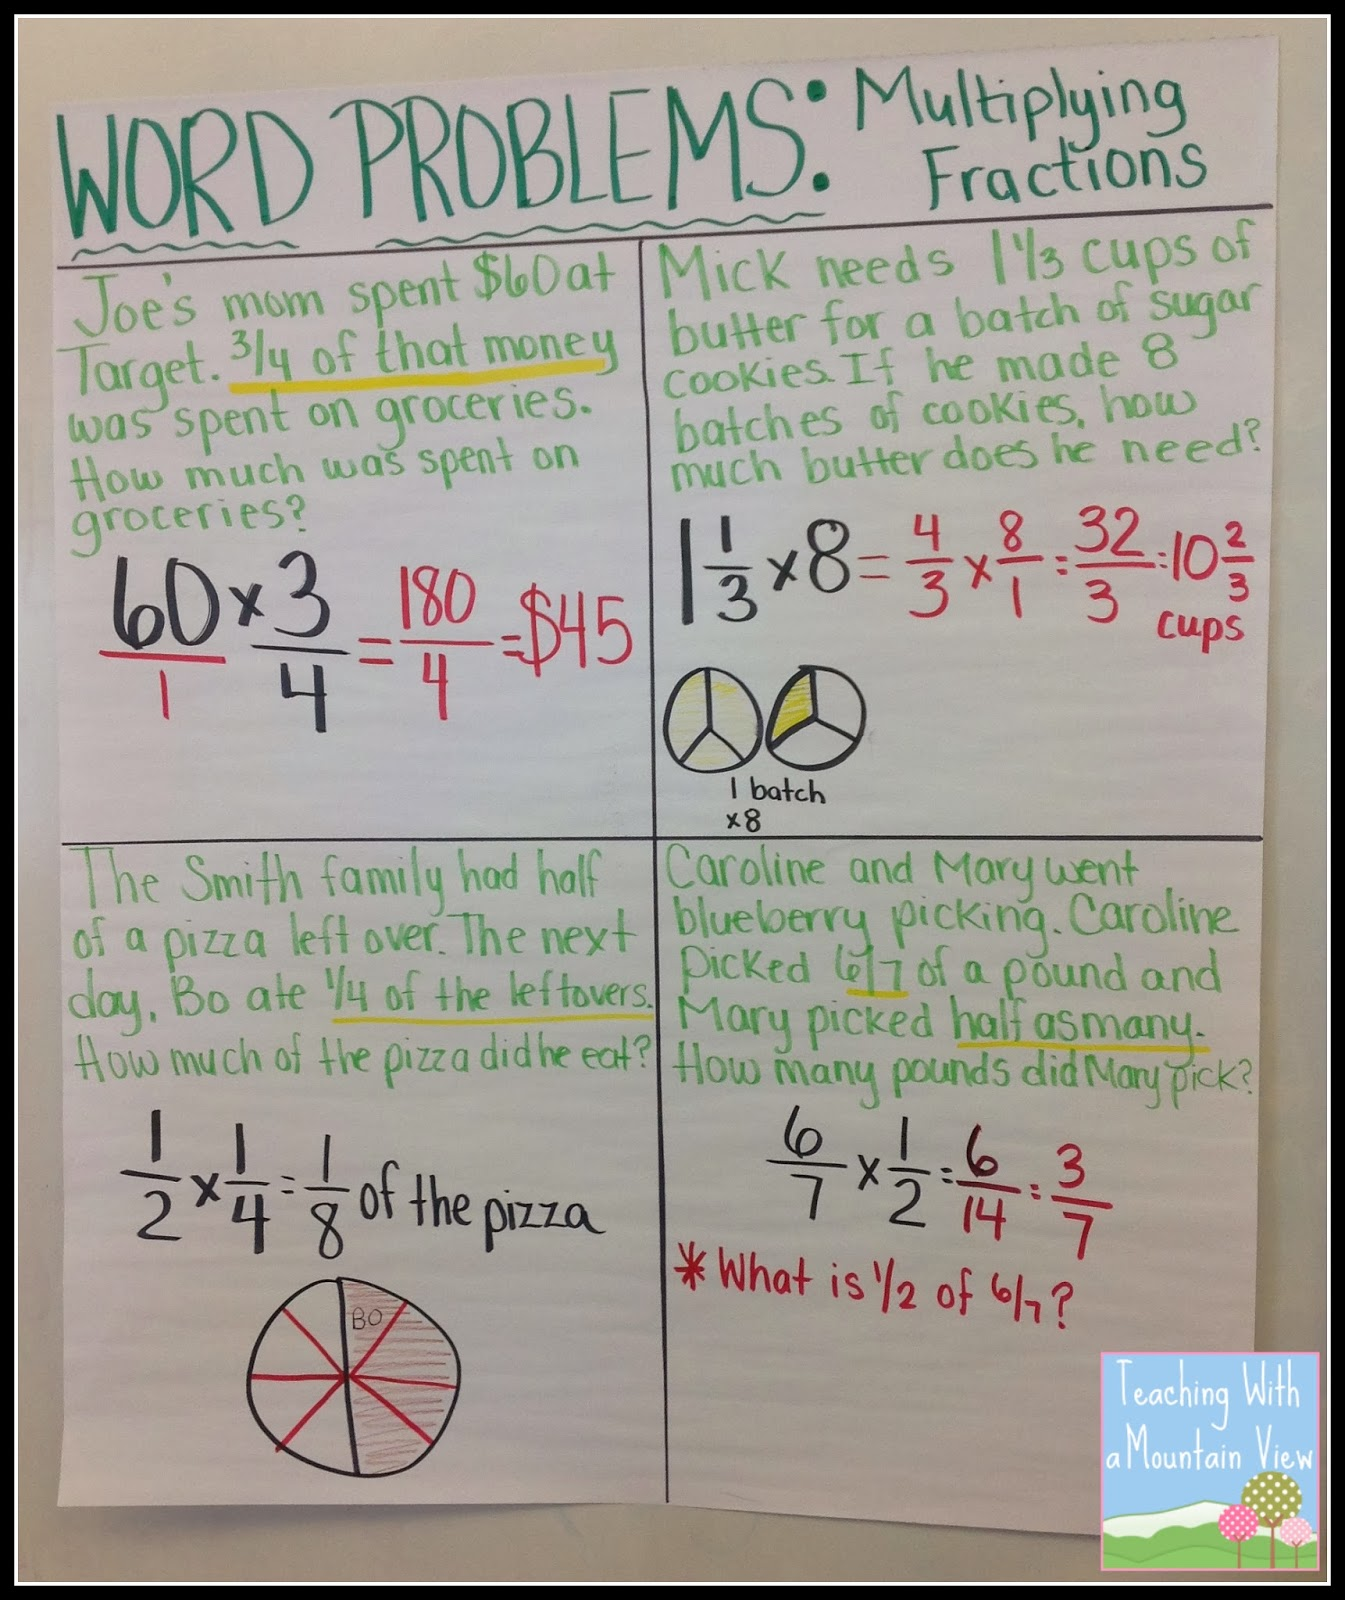 Worksheet Multiplication And Division Fraction Word Problems teaching with a mountain view making sense of multiplying we dissected these word problems underlined key phrases that they felt helped them to know what type problem were reading and d